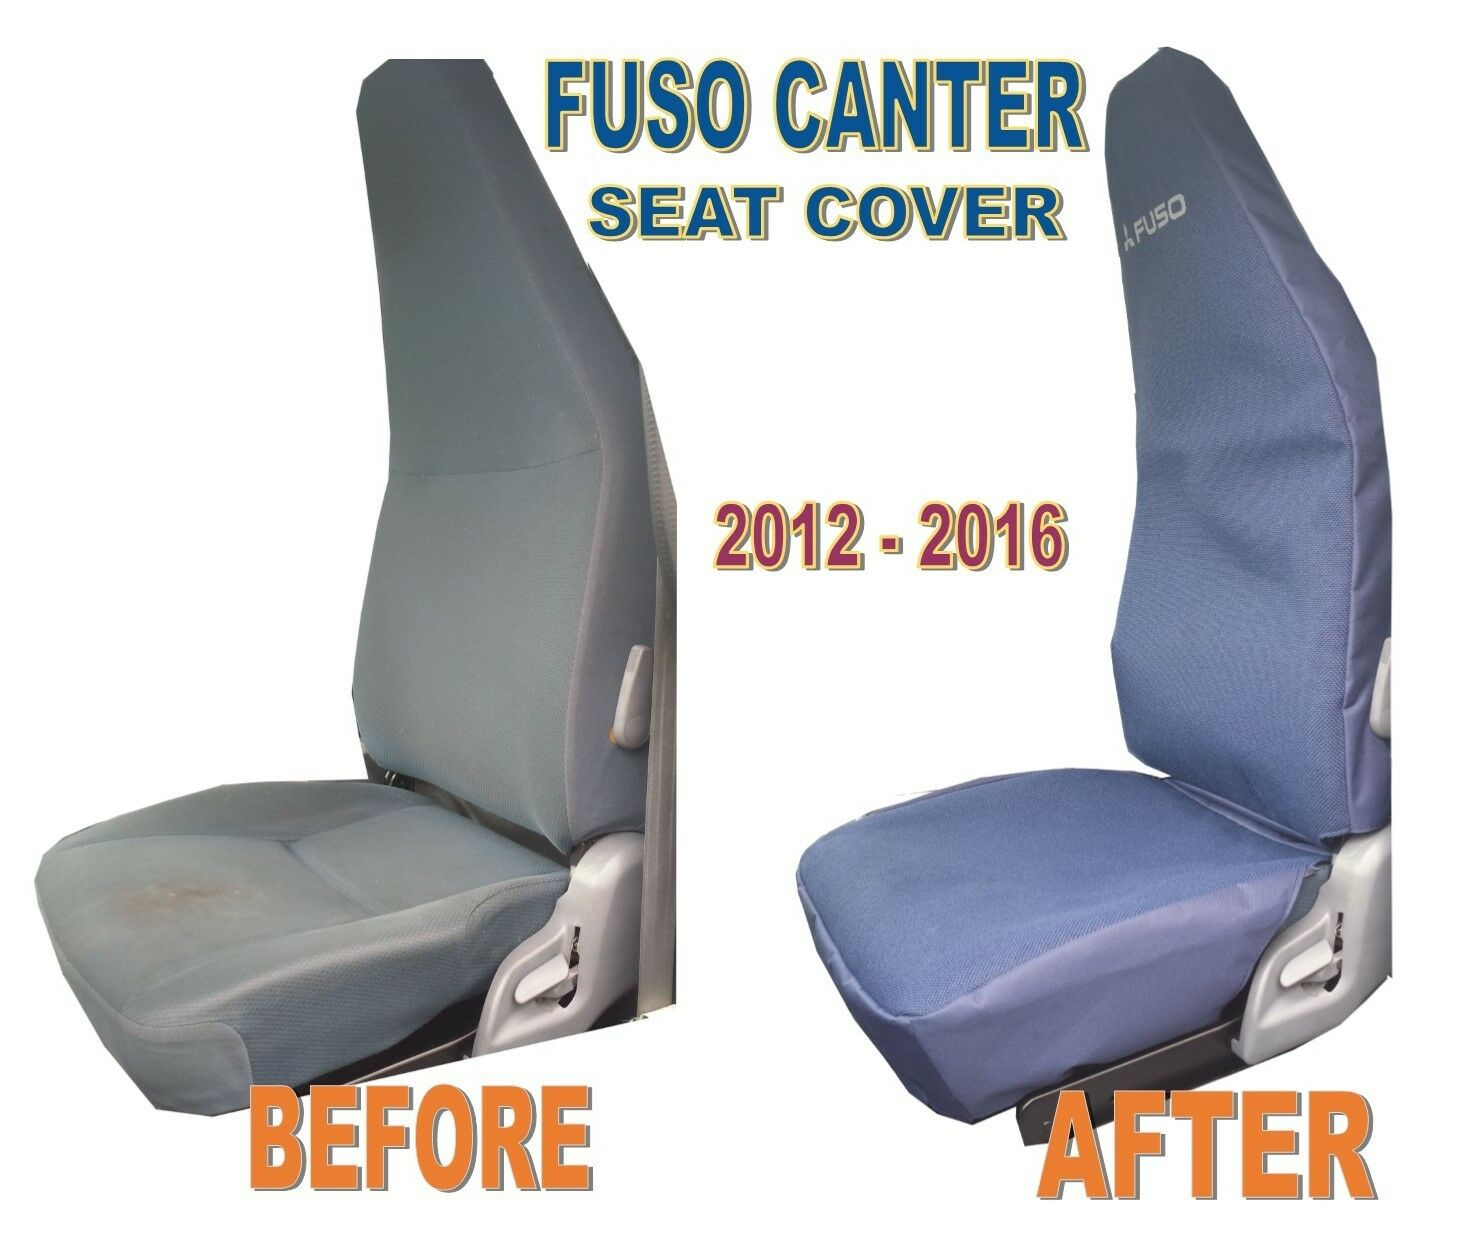 Mitsubishi Fuso Canter OEM Replacement Seat Cover for 2012-2016 Models, Driver Side